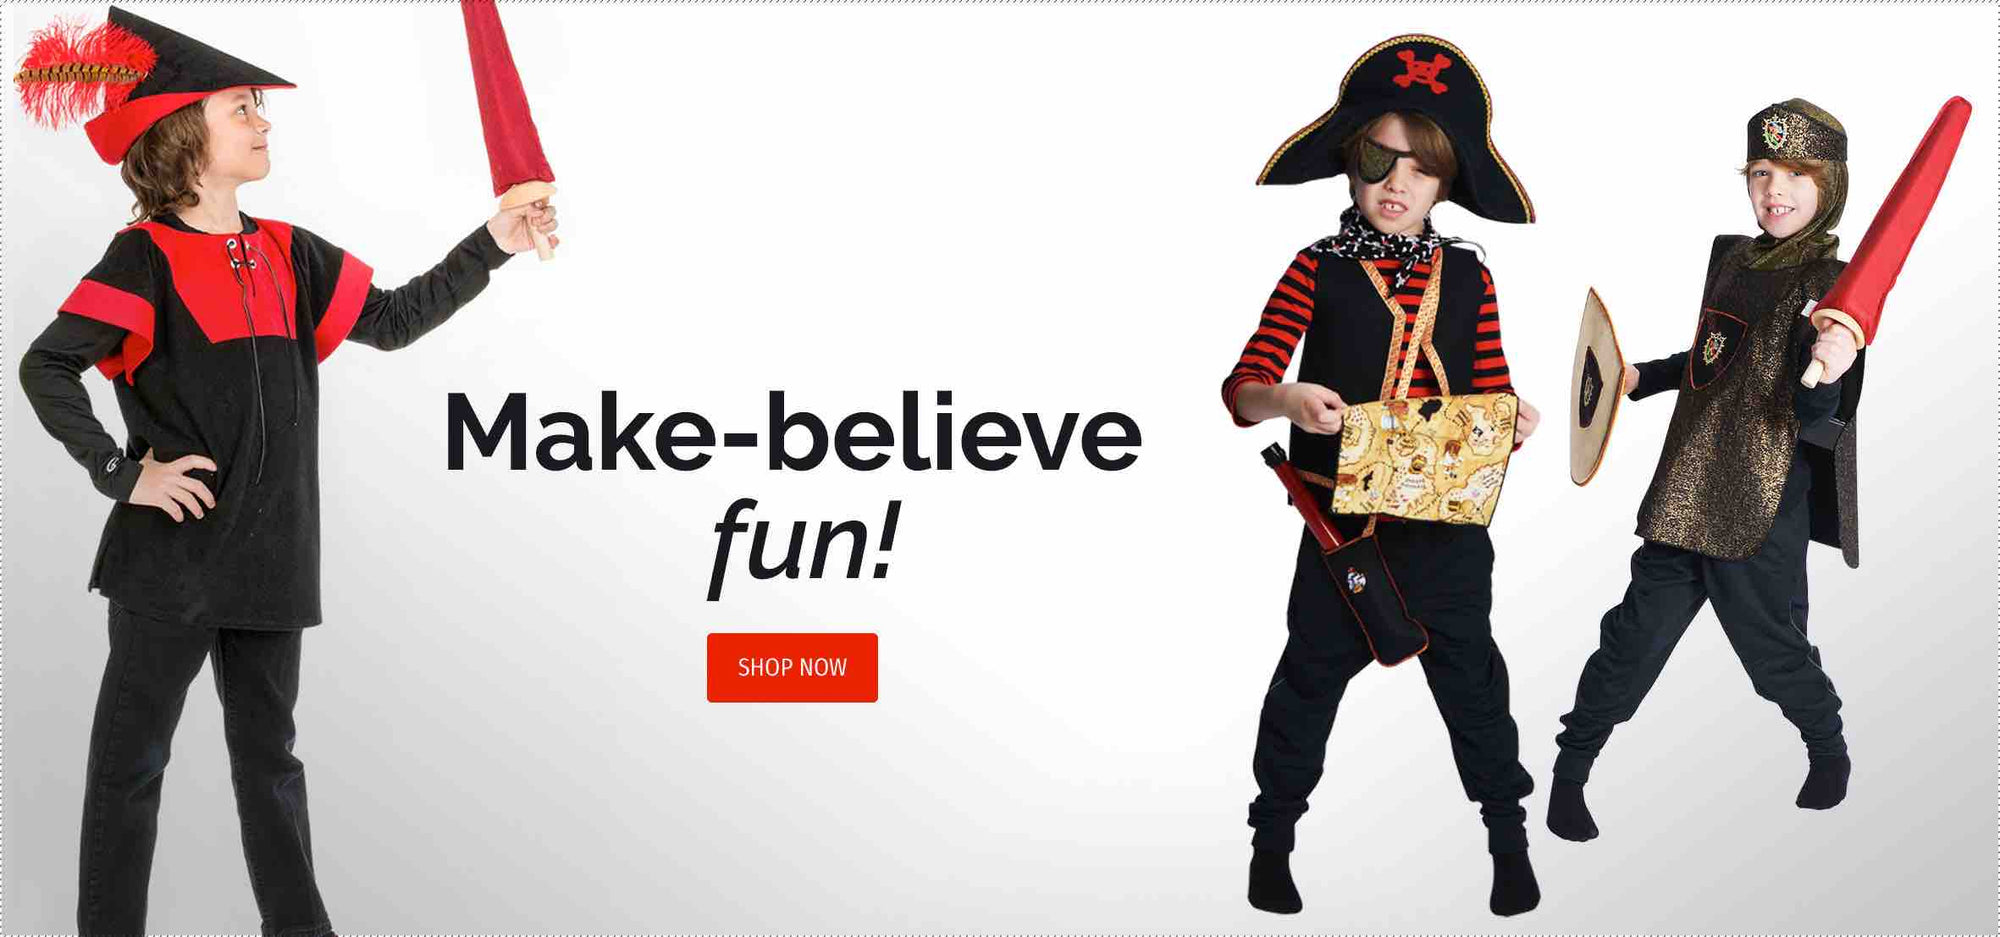 Image of kids wearing robin hood, pirate, and knight costumes. Text reads: Make-believe fun!